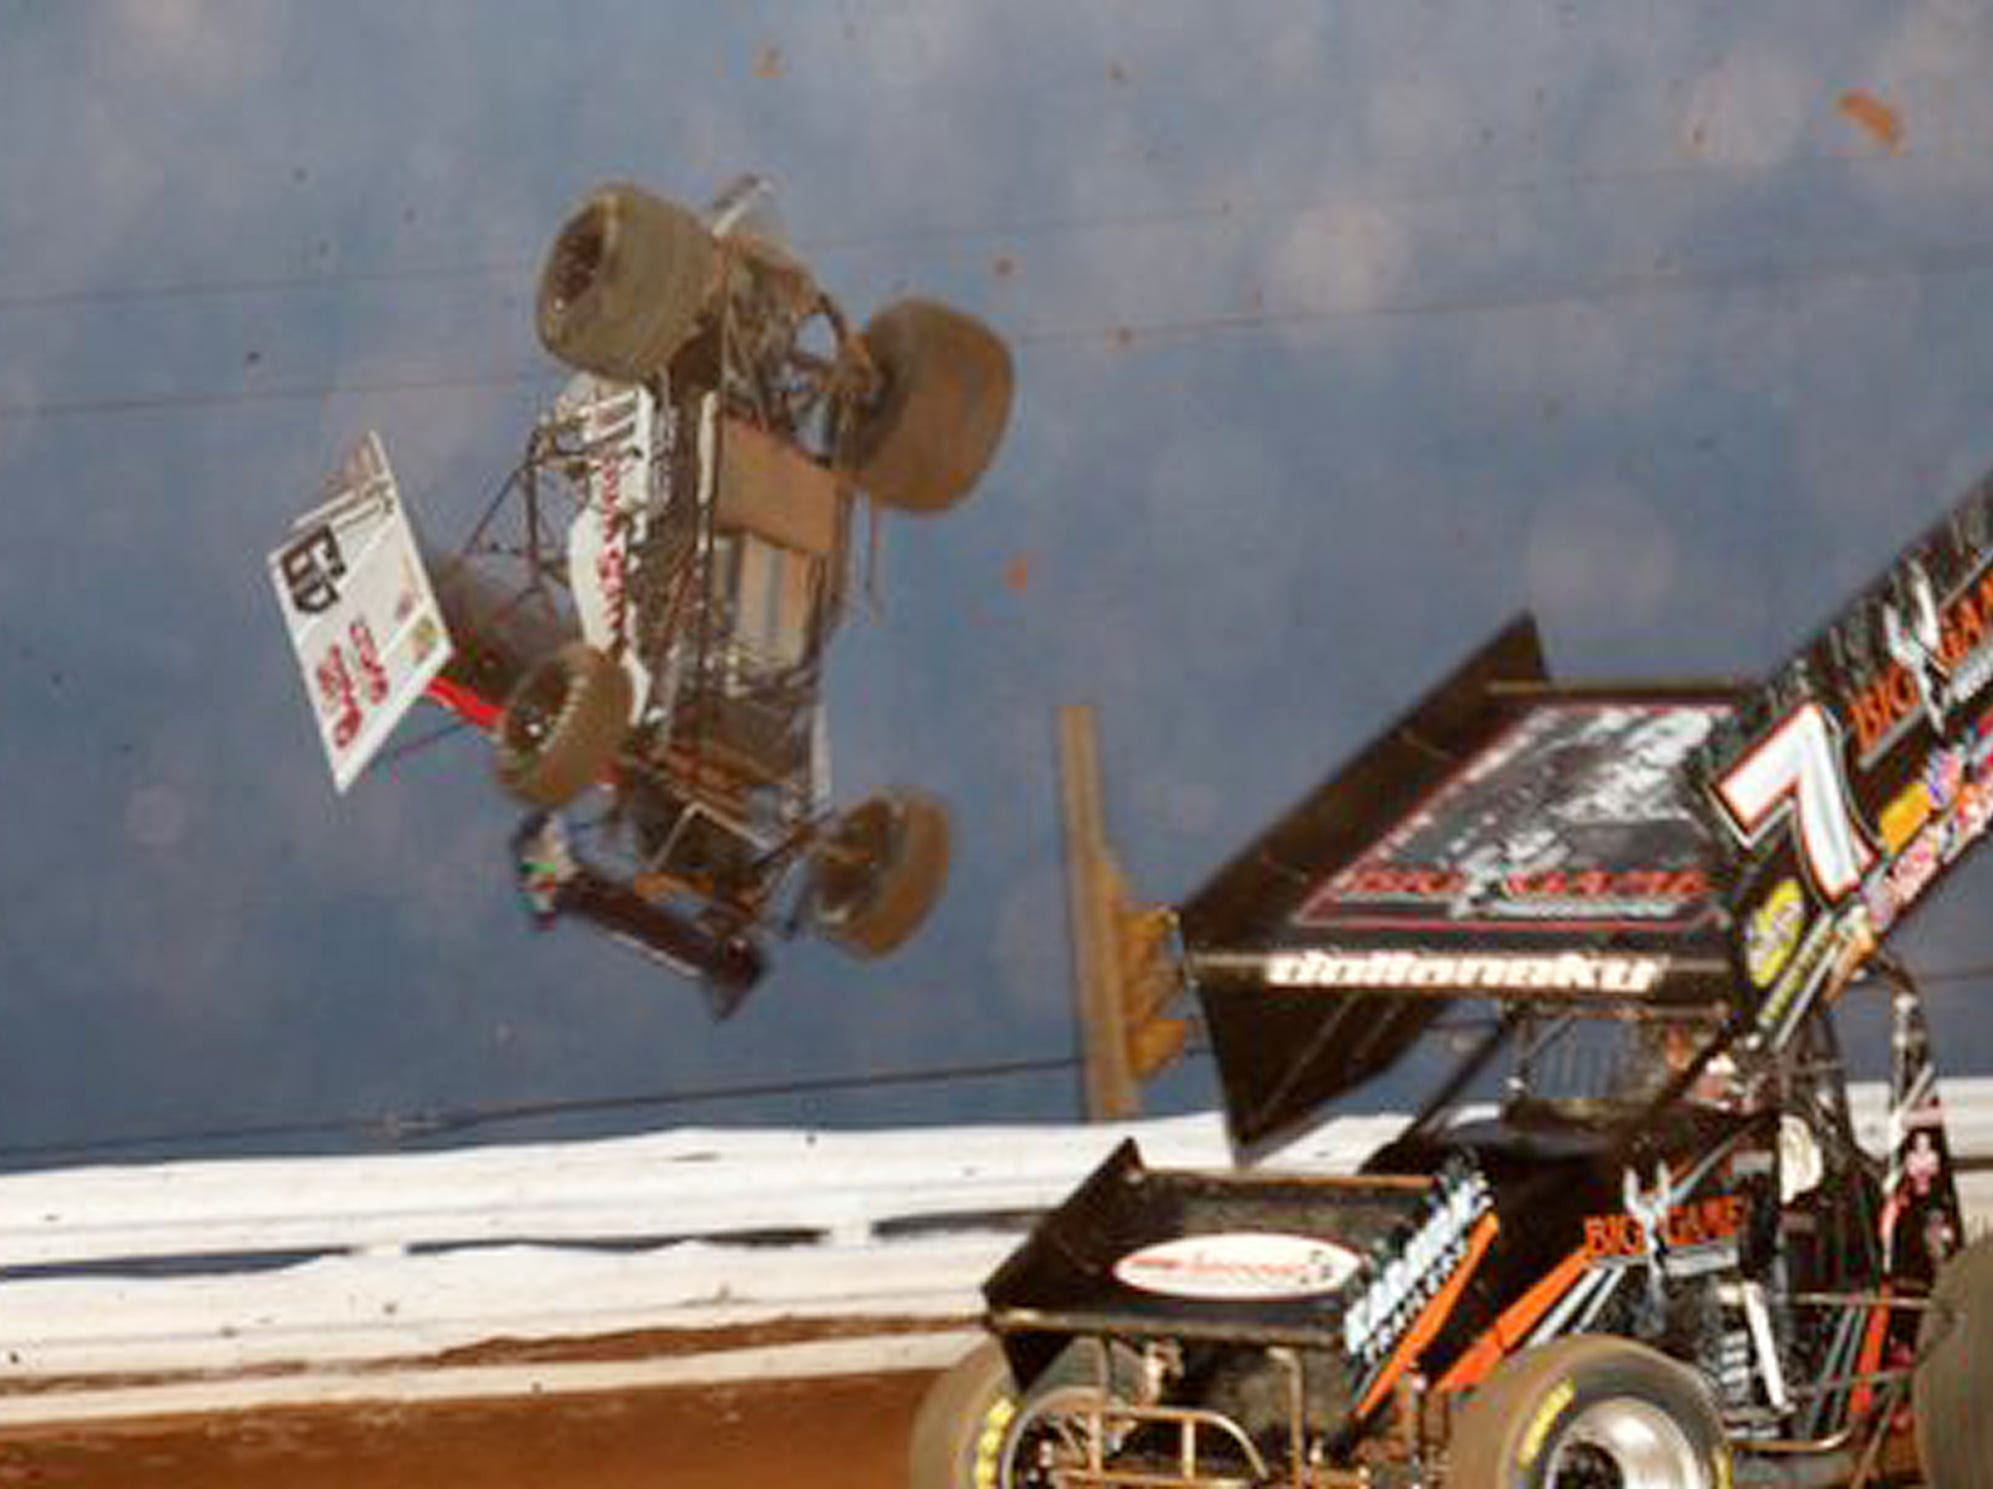 Kasey Kahne, in the No. 49 sprinter, after being nudged by the No. 7 car and   hitting the outside loose dirt, flips completely out and over the fencing of turn 4 at Williams Grove Speedway in 2011 without touching the outside fencing and landing upright on his four wheels during the heat races on Friday night. Kahne's car was smashed but he was not hurt.